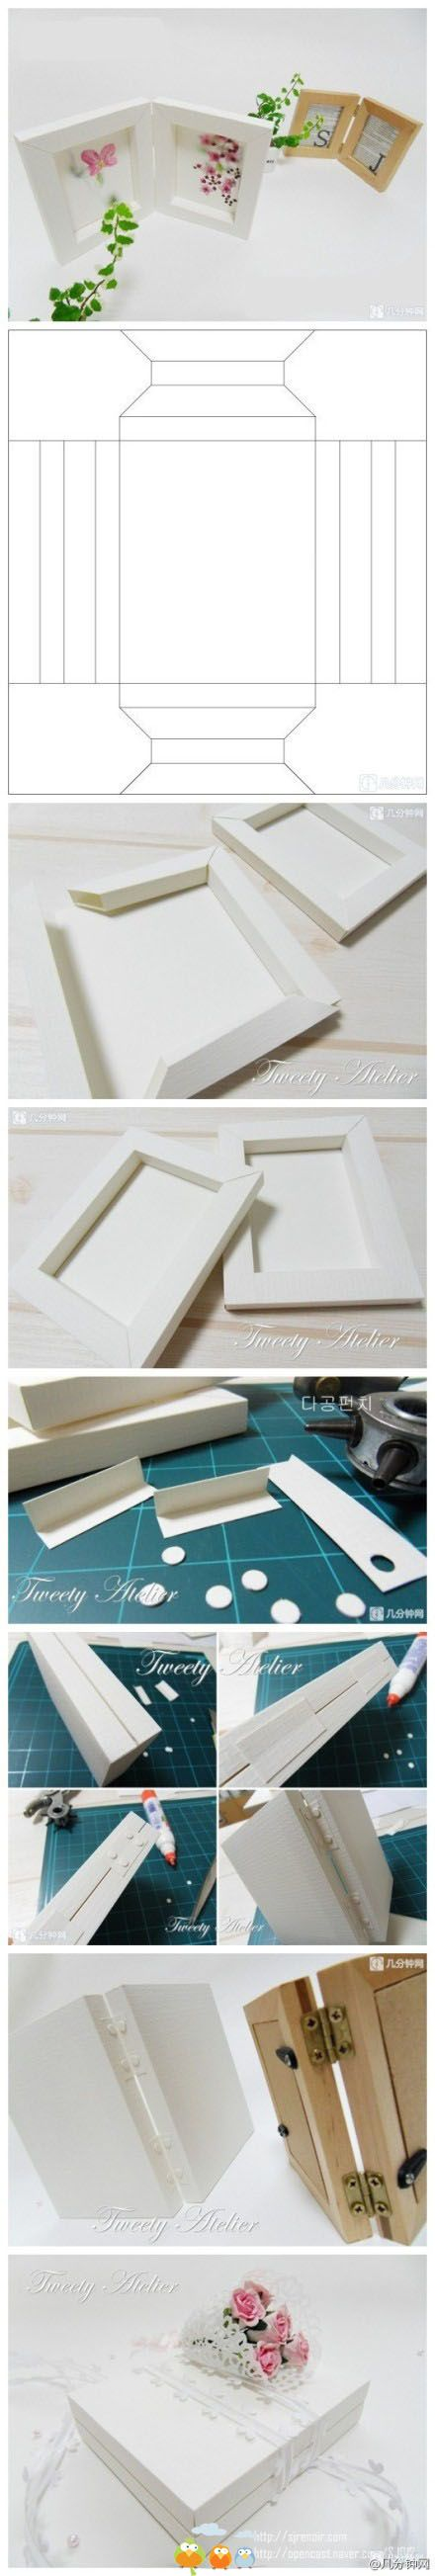 how to make a gift box, or even a foto box. cute gift idea.